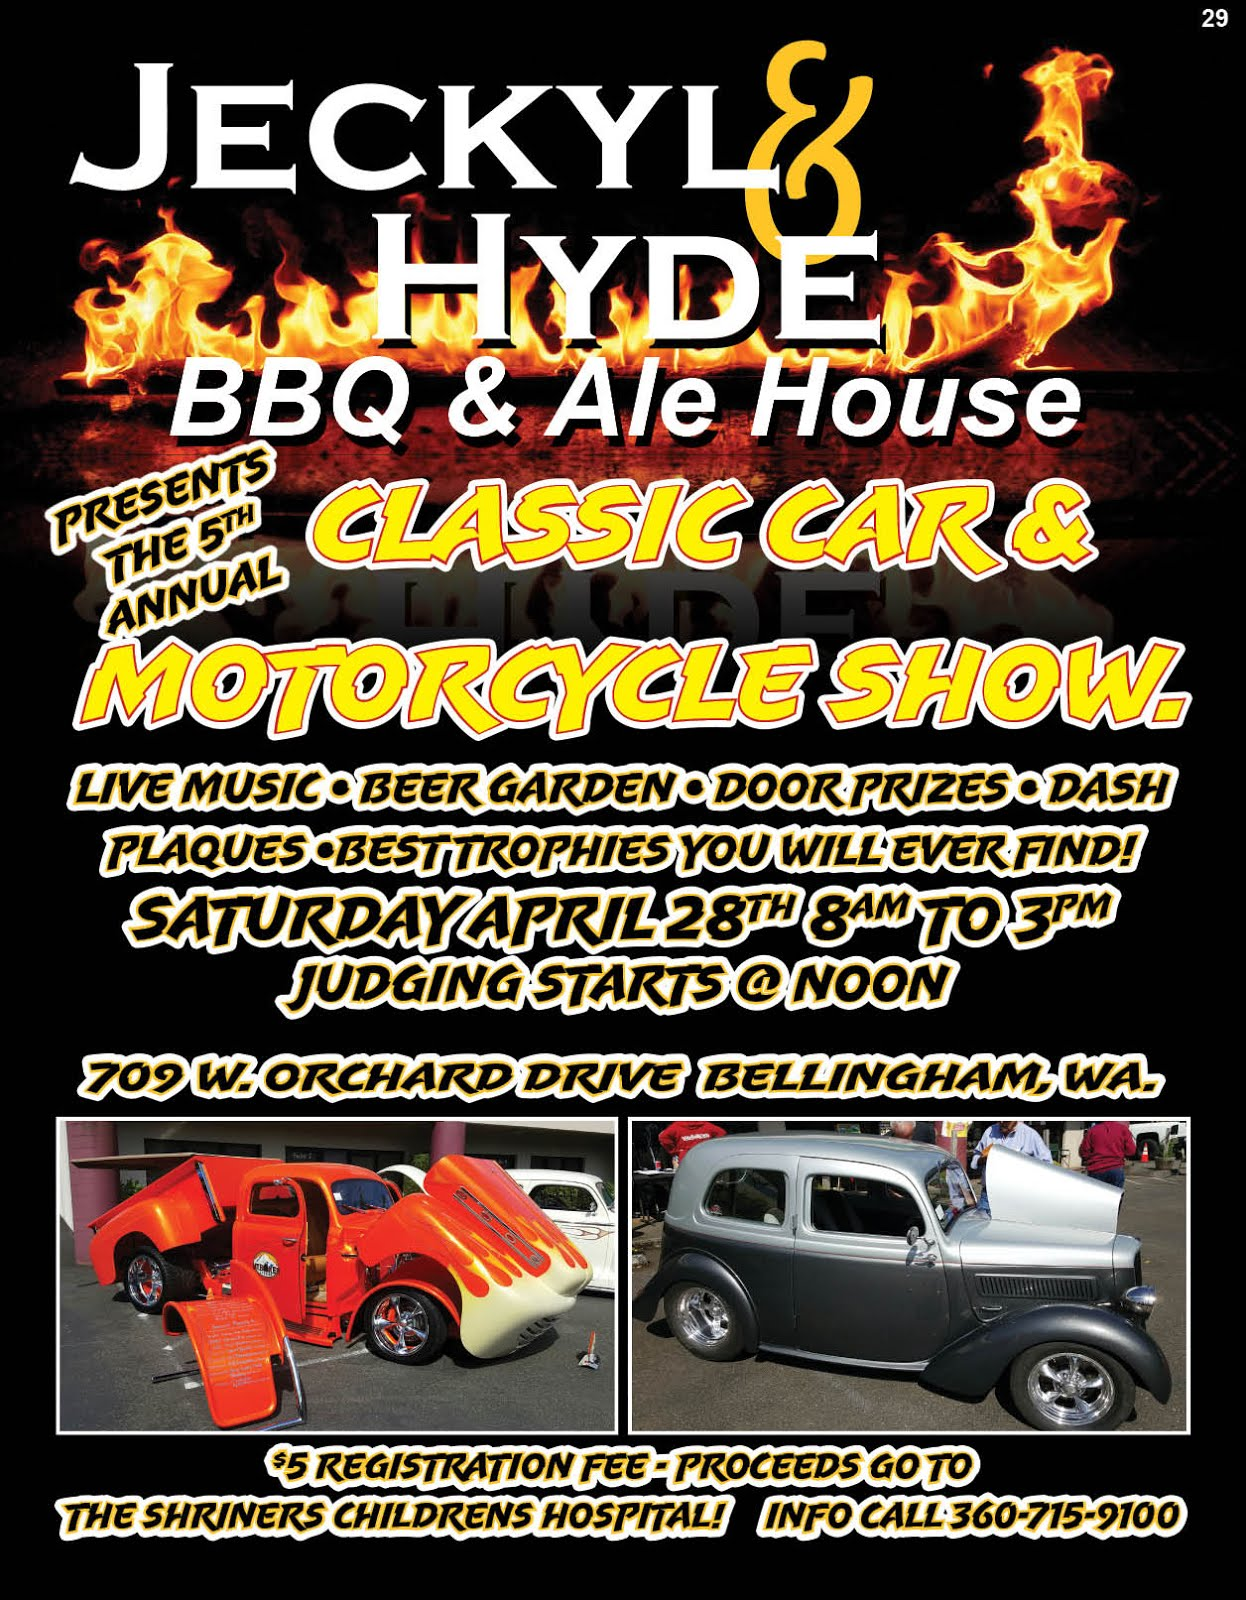 Jeckyl & Hyde BBQ & Ale House 5th Annual Classic Car & Motorcycle Show!!